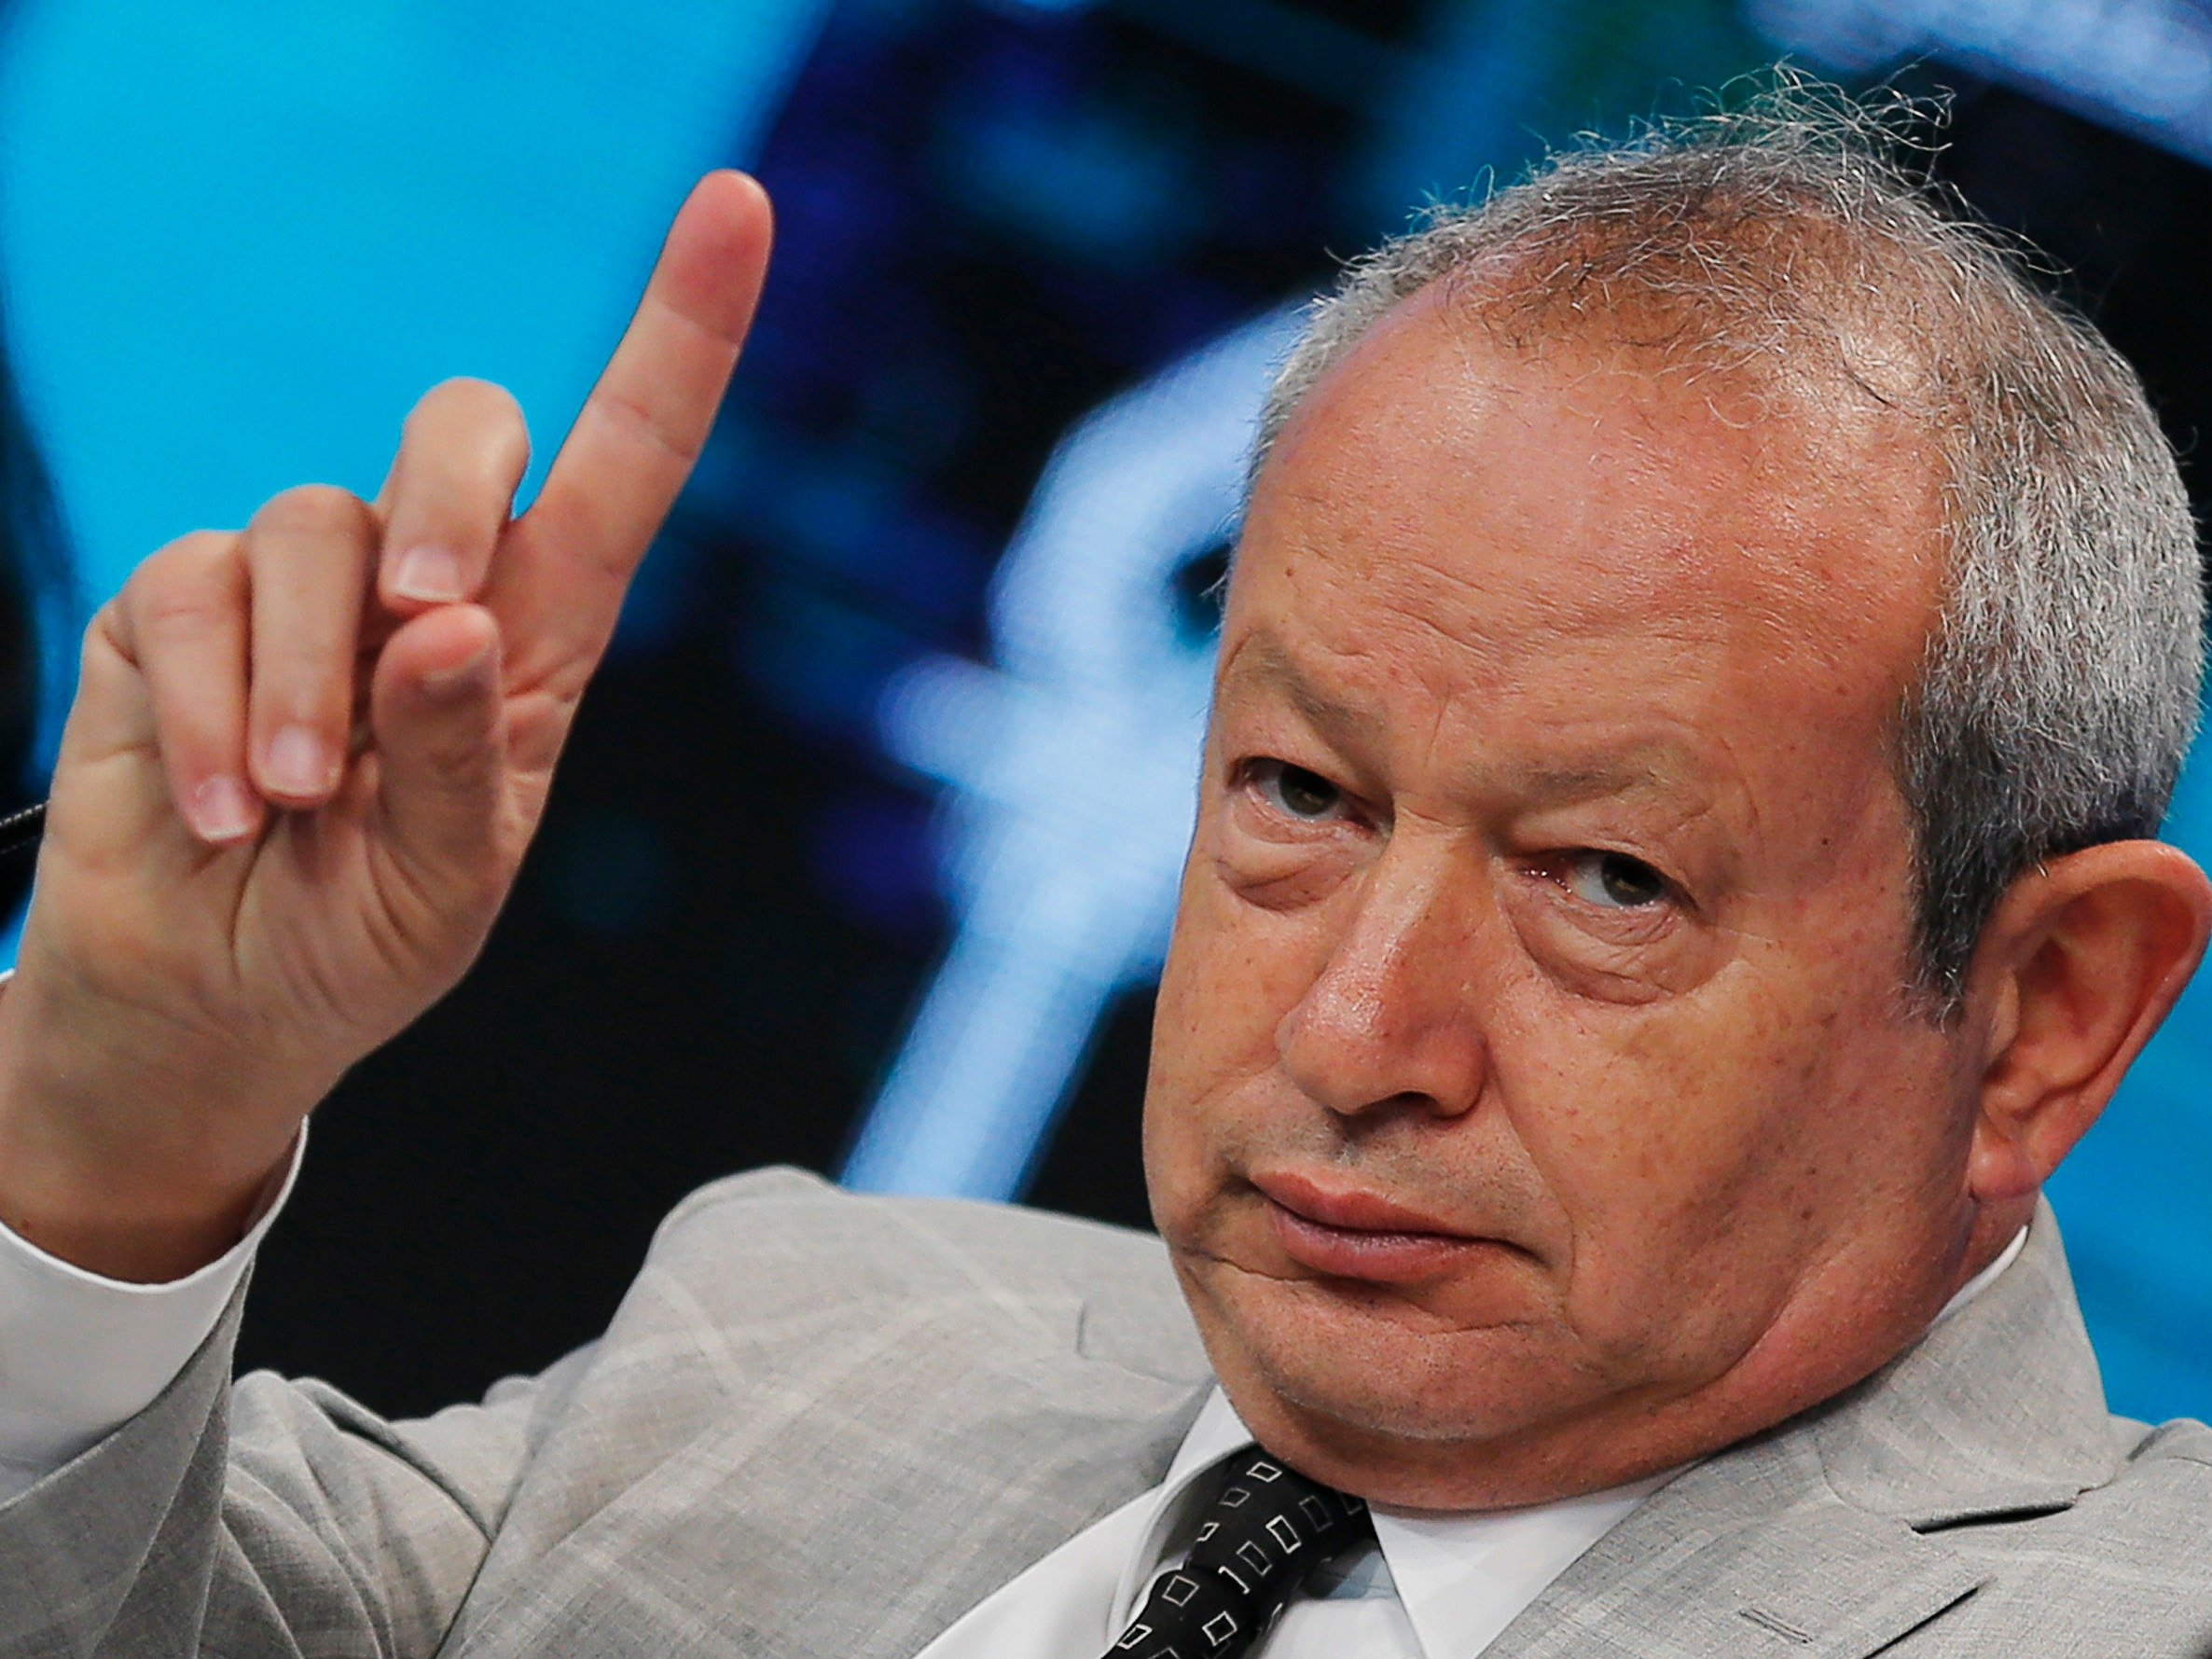 Egyptian billionaire Naguib Sawiris, chairman of Orascom TMT Holding, speaks during the Egypt Economic Development Conference (EEDC) in Sharm el-Sheikh, in the South Sinai governorate, south of Cairo, March 2014